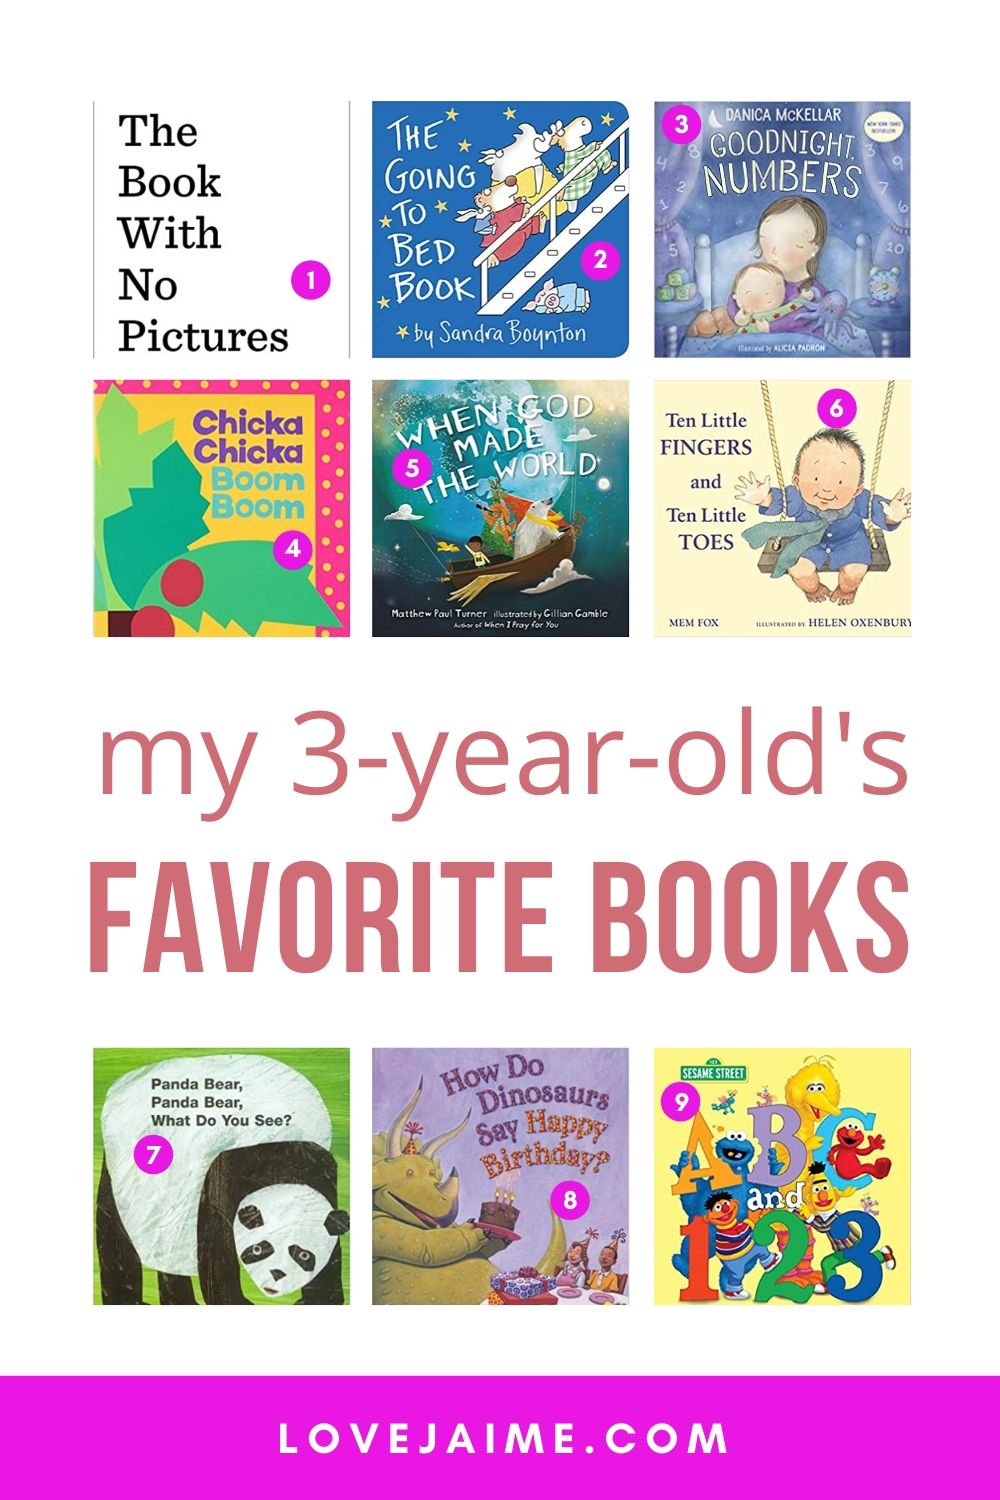 My 3-year-old's favorite books! We read at least 3 or 4 books each night, and these are in a constant rotation. And right now, you can get massive deals on some of them.